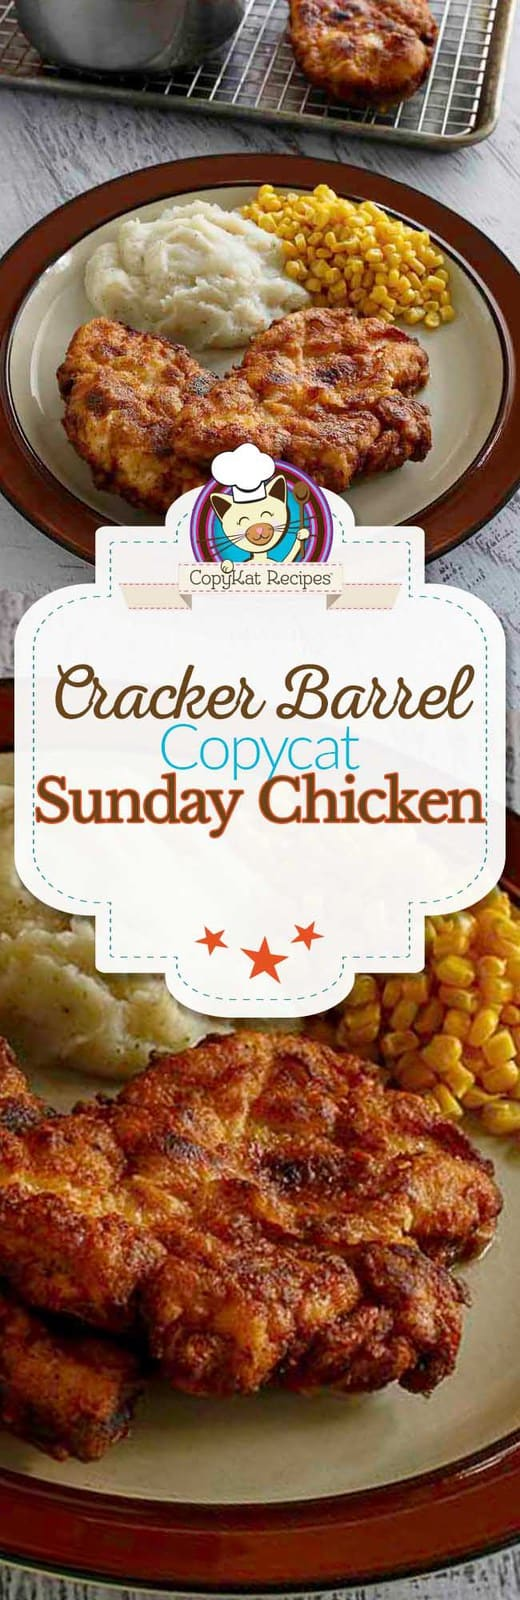 Make this delicious chicken recipe any day of the week.  Cracker Barrel serves the Sunday Homestyle chicken only on Sunday.  You can make it any day of the week. #chicken #dinner #recipe #copycat #crackerbarrel